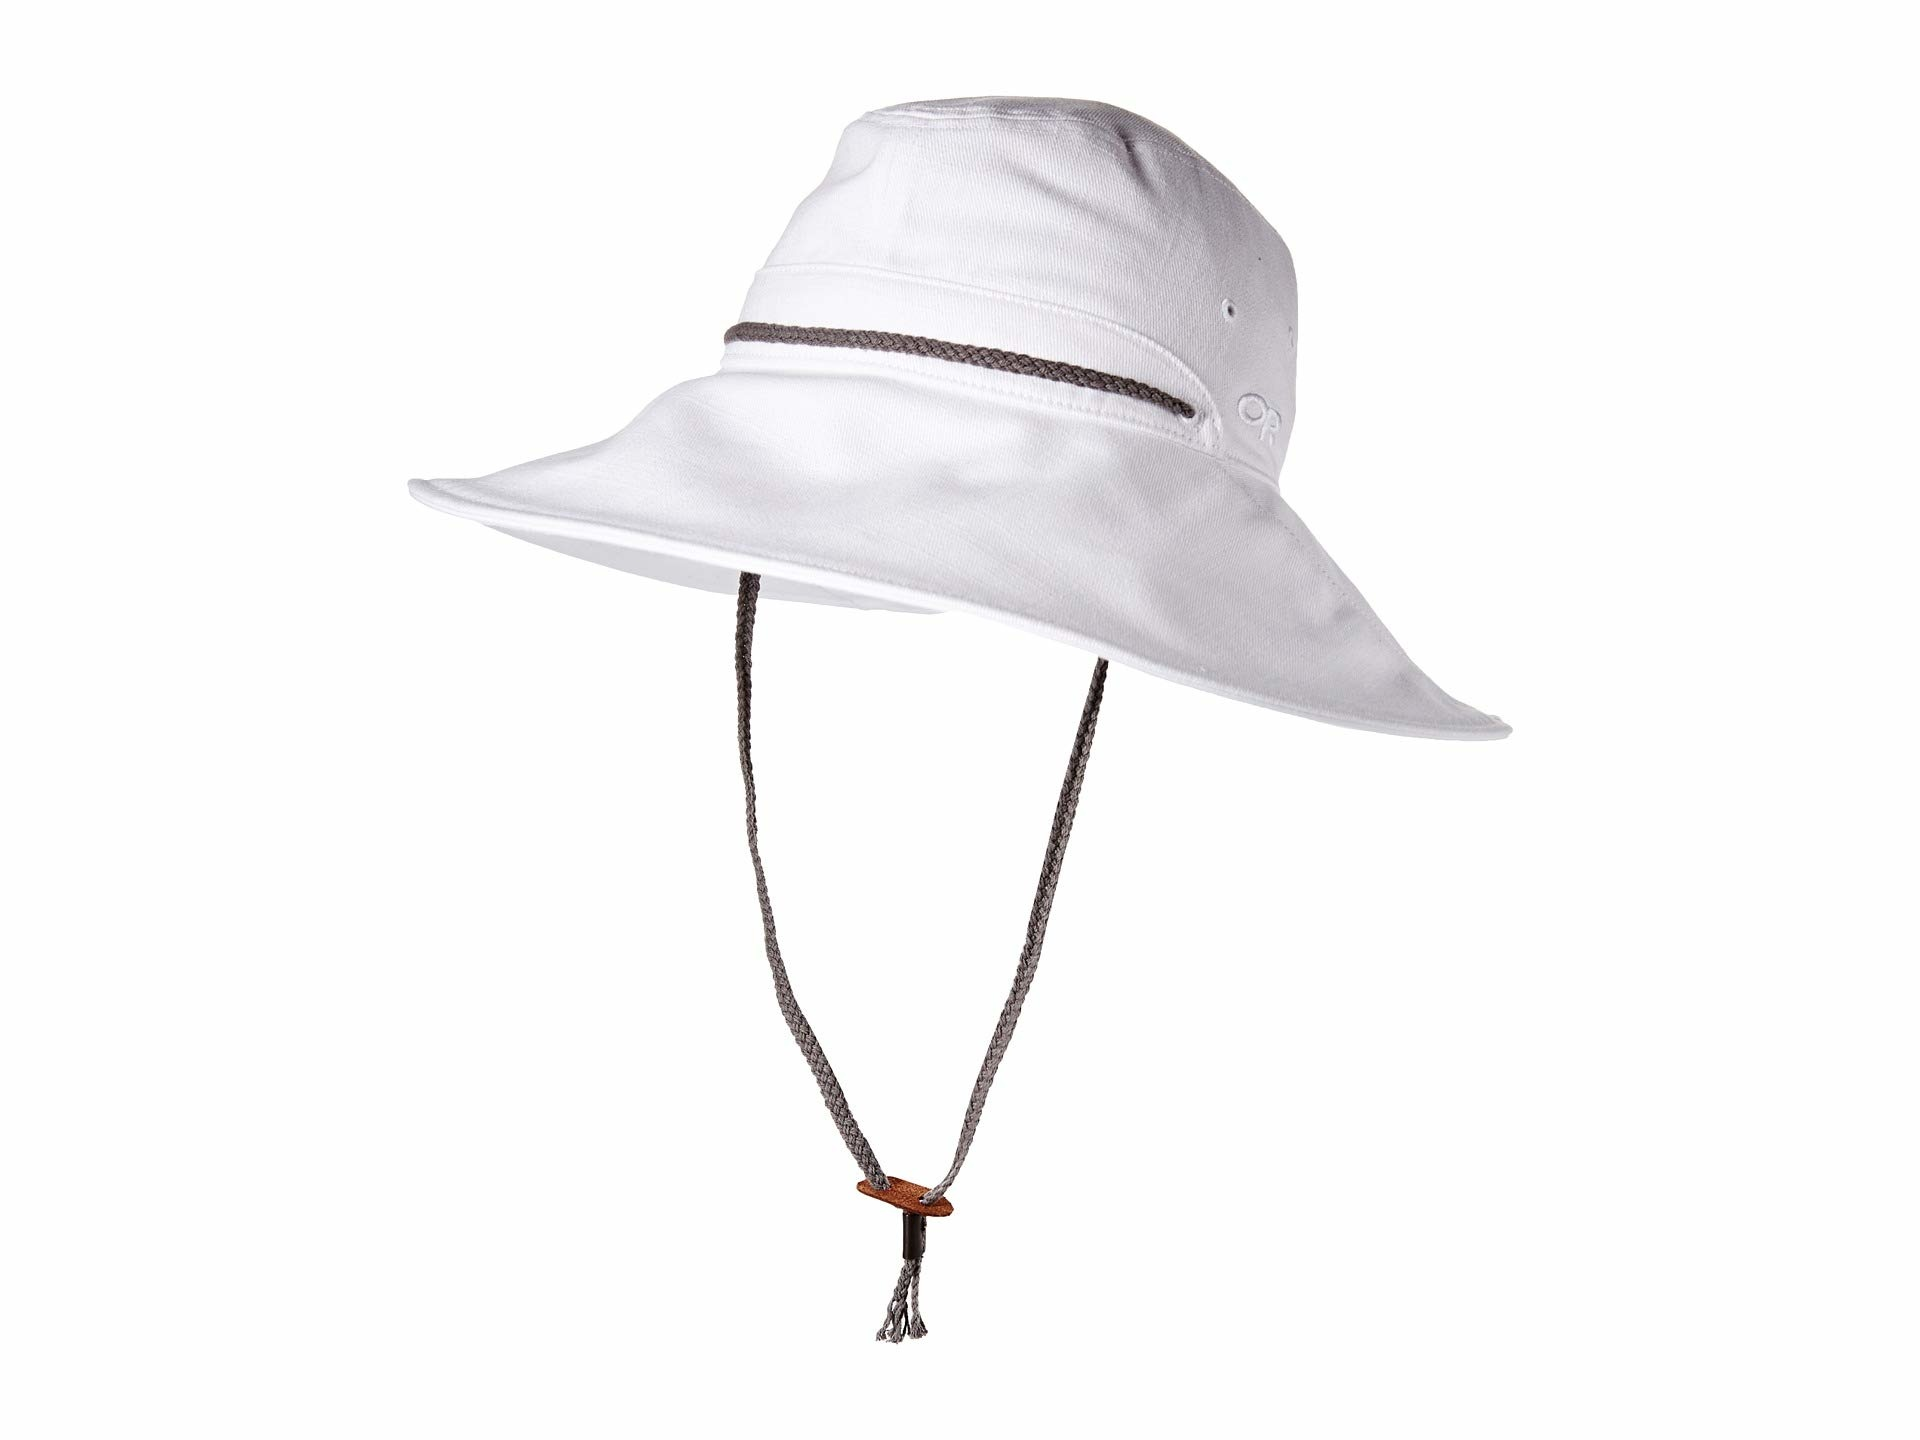 9d21ad941f8ca OR Women s Mojave Sun Hat white - Vital Outdoors